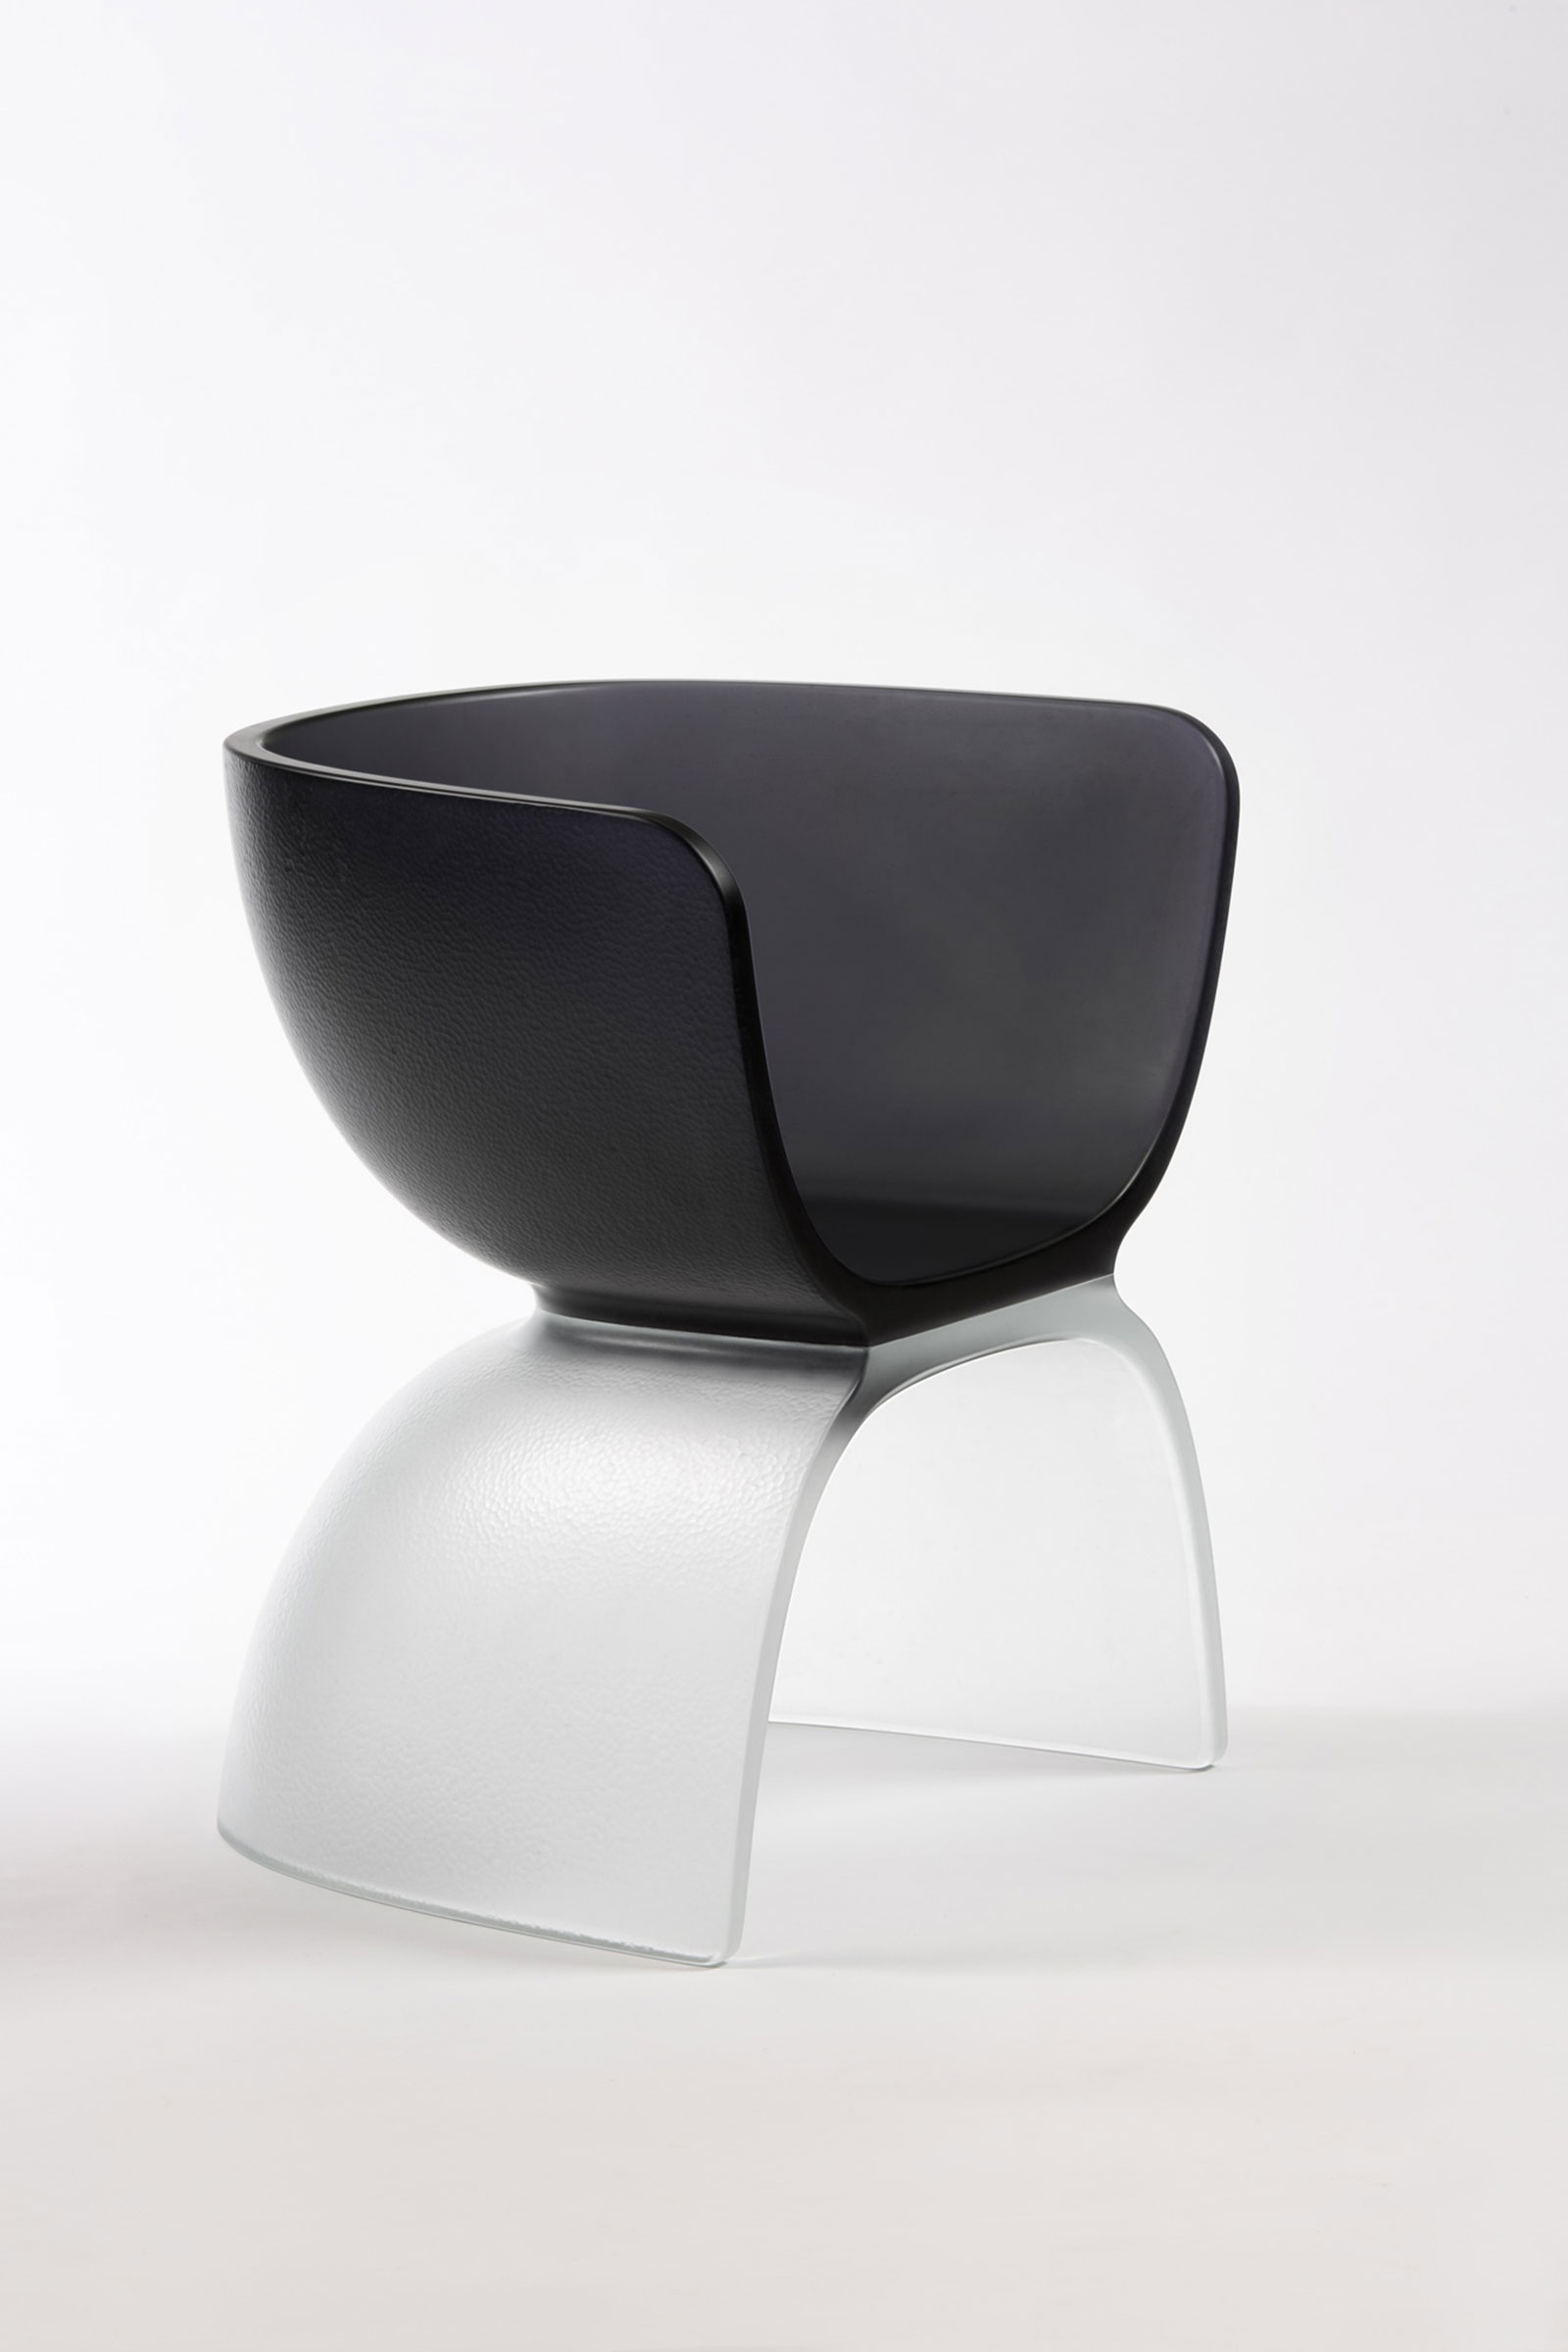 Charcoal Glass Chair , Cast Glass by Marc Newson. Image by Jaroslav Kvíz. Courtesy Gagosian